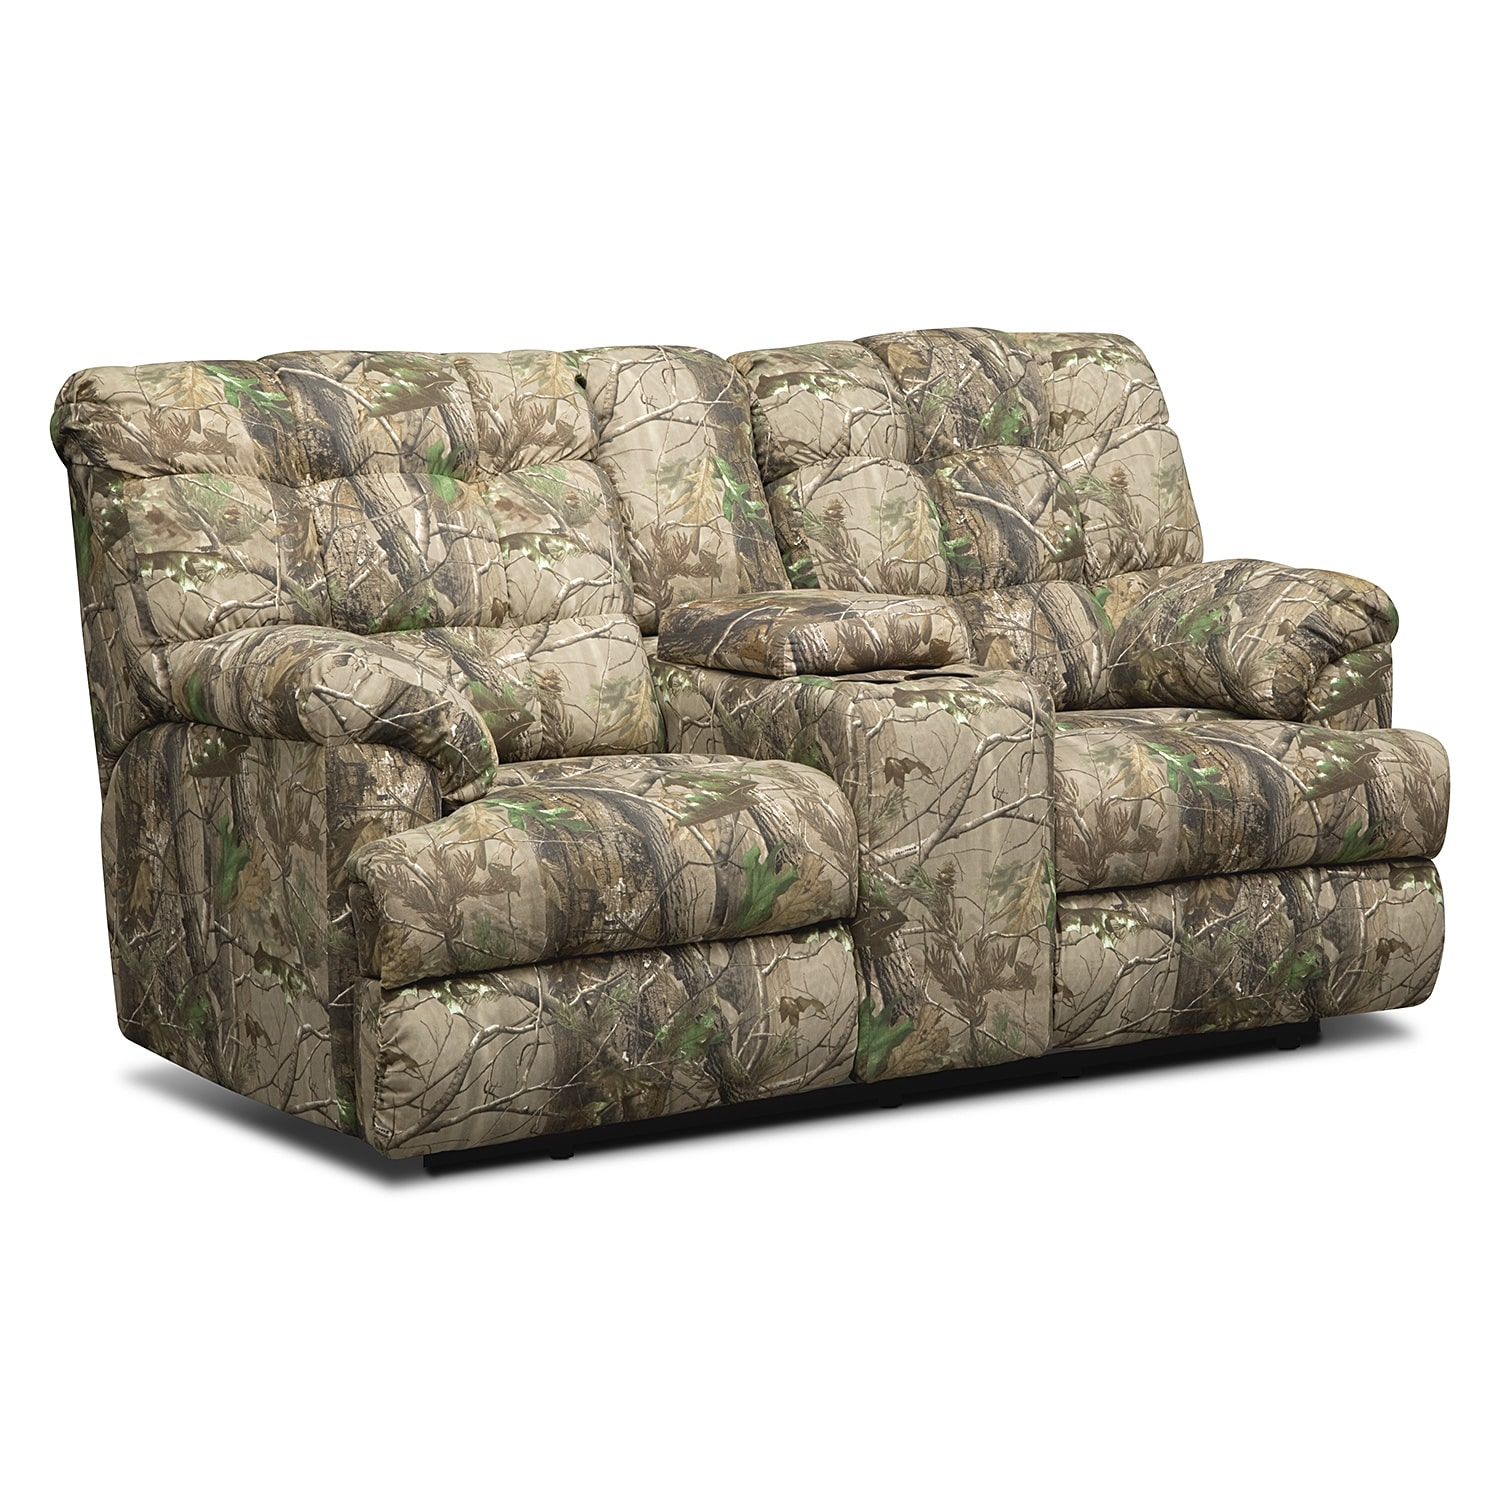 Jasper Bay Upholstery Dual Reclining Loveseat Value City